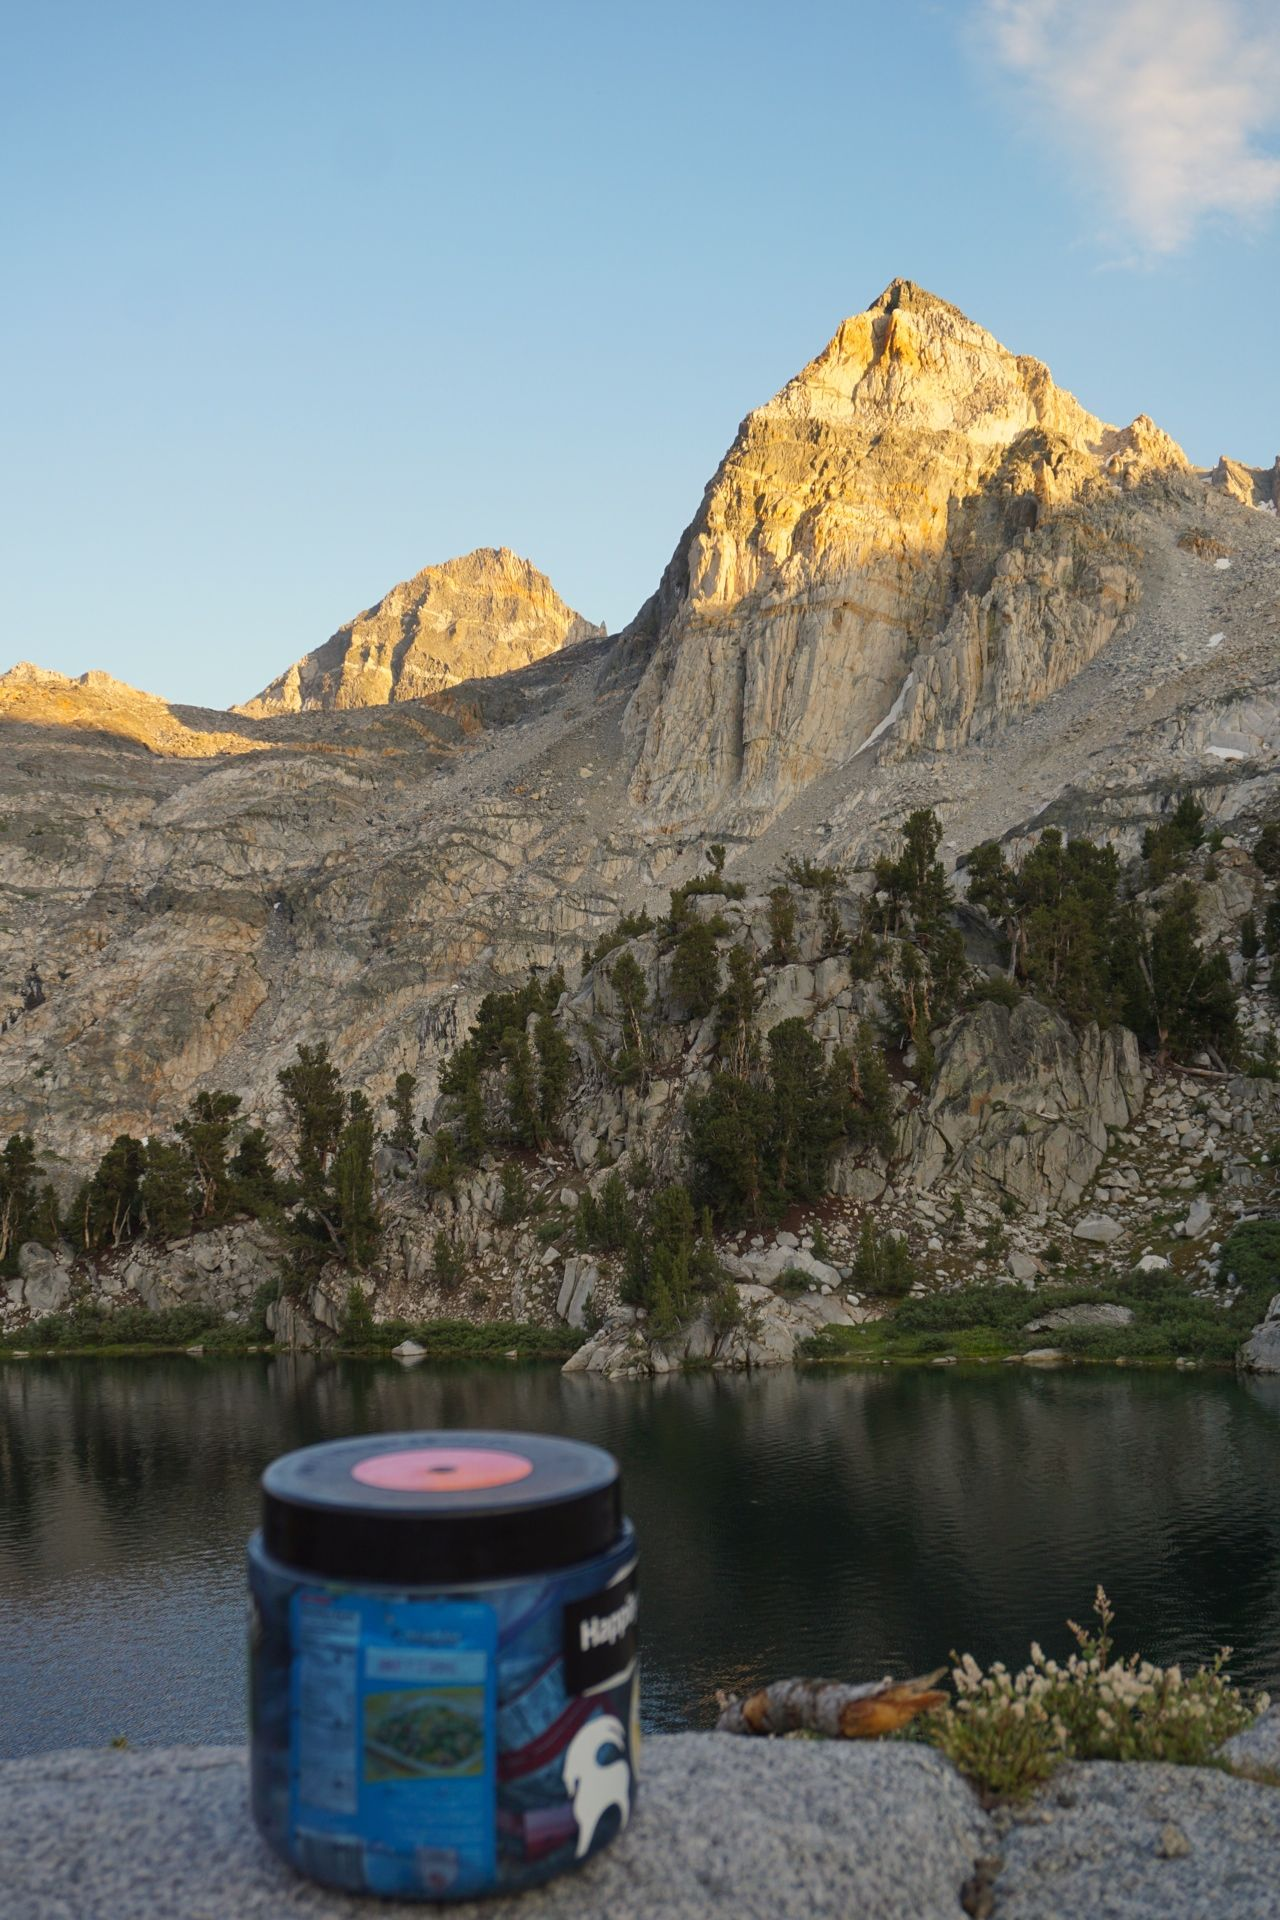 Best Bear Canister 2020 How To Master Packing A Bear Canister   John Muir Trail 2019/2020